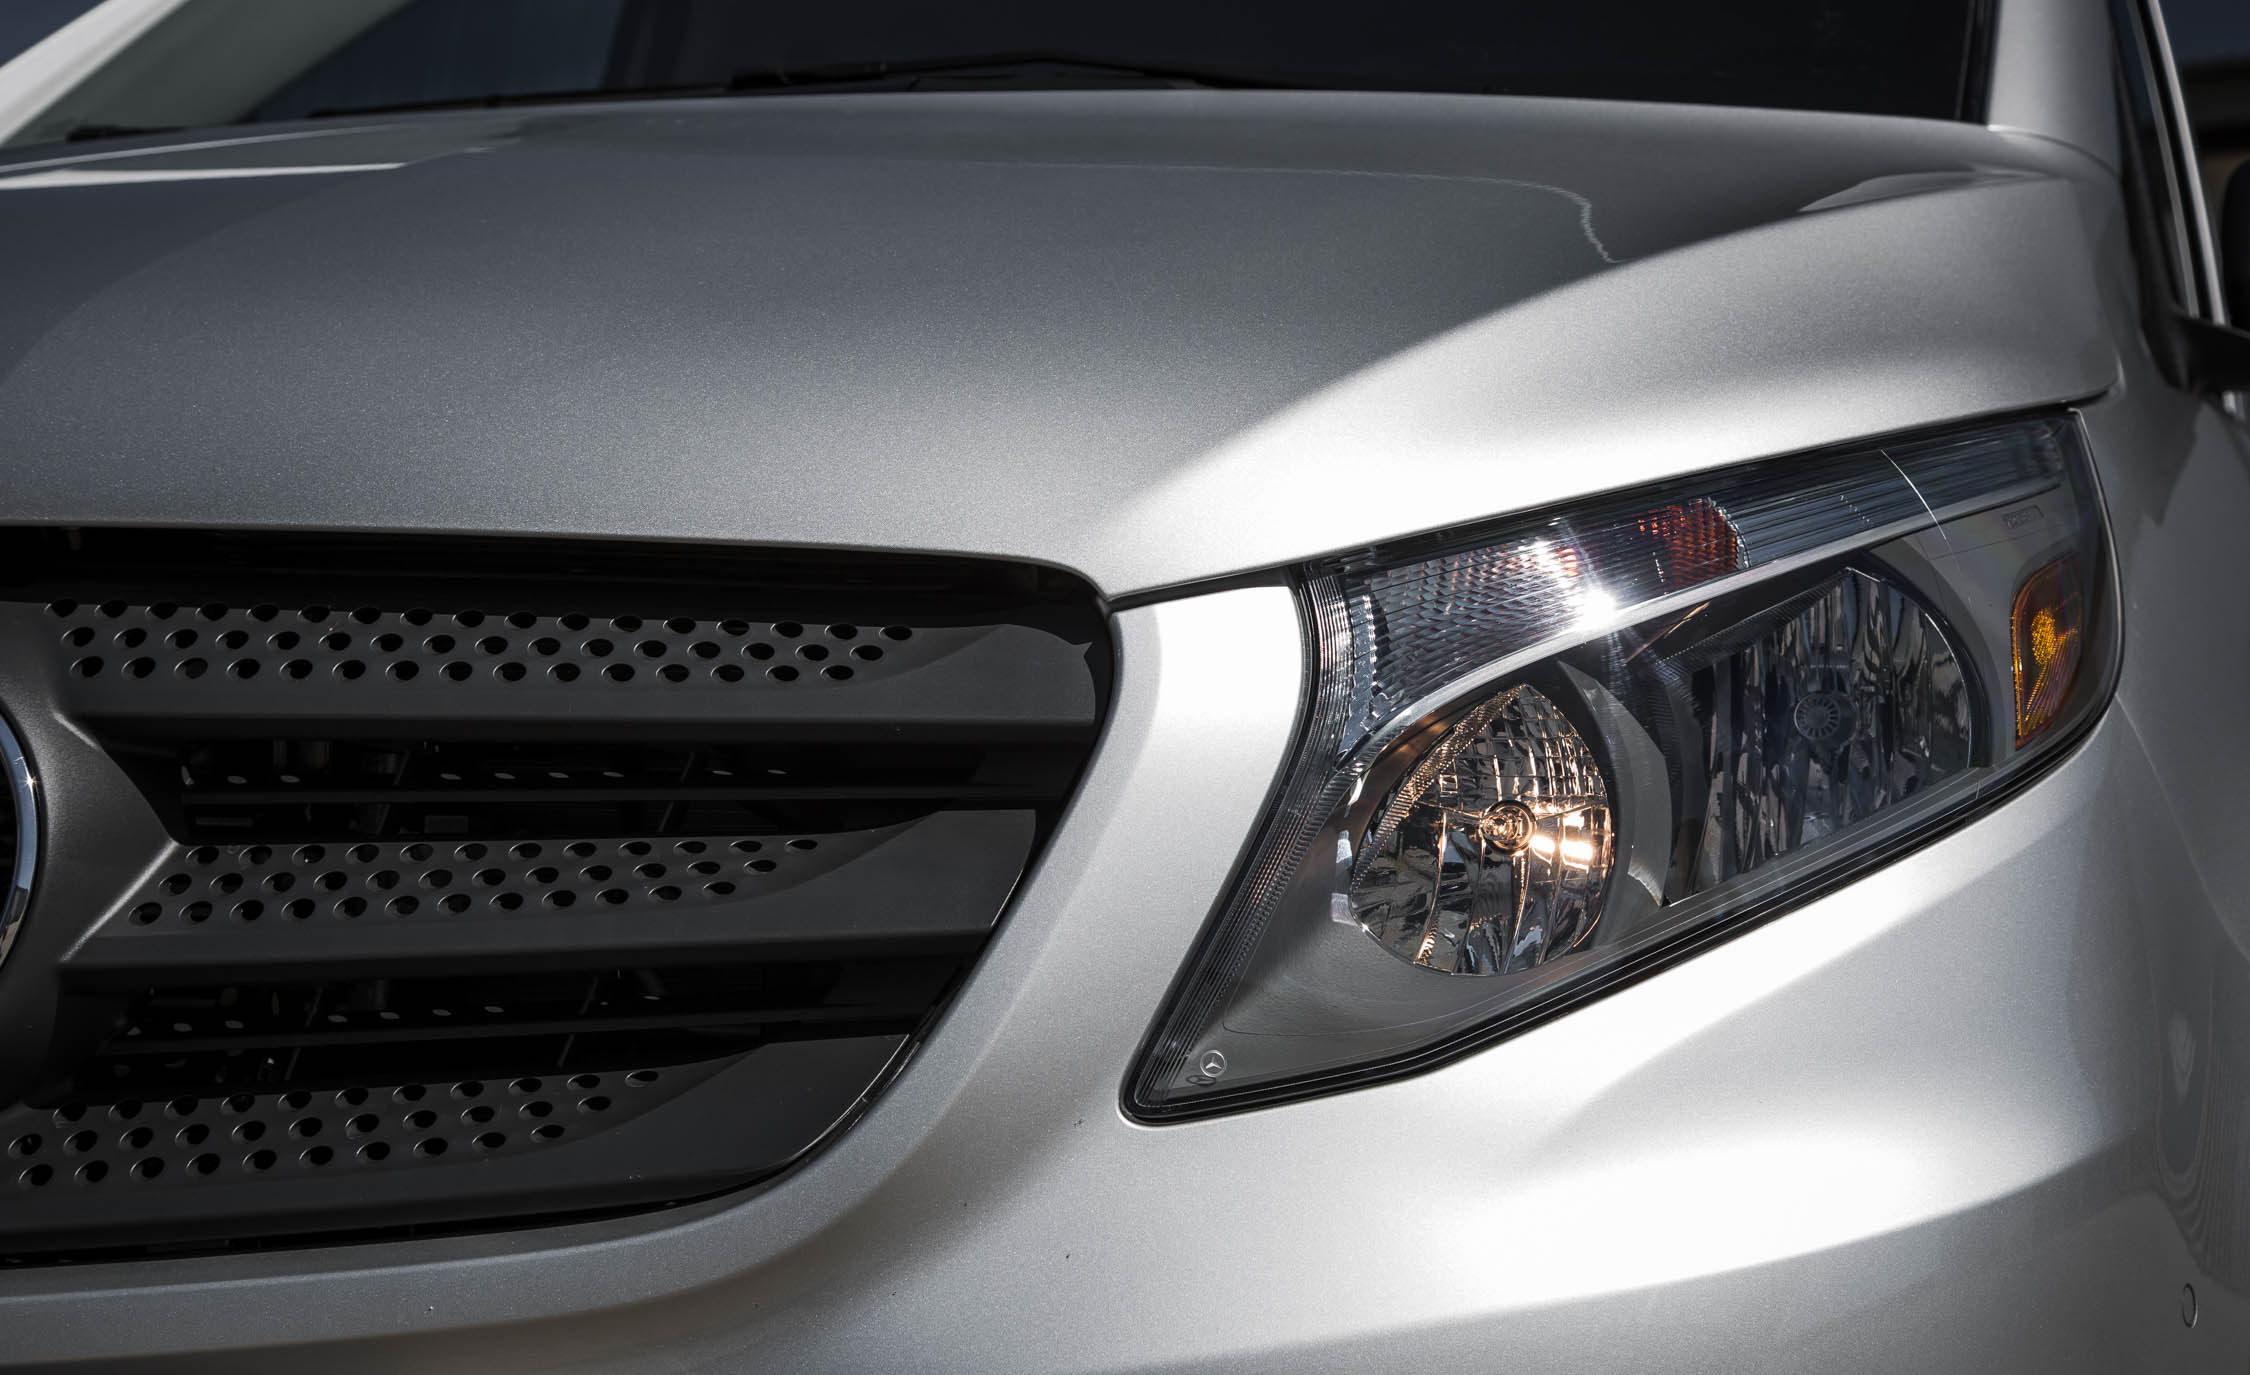 2016 Mercedes-Benz Metris Exterior Headlight